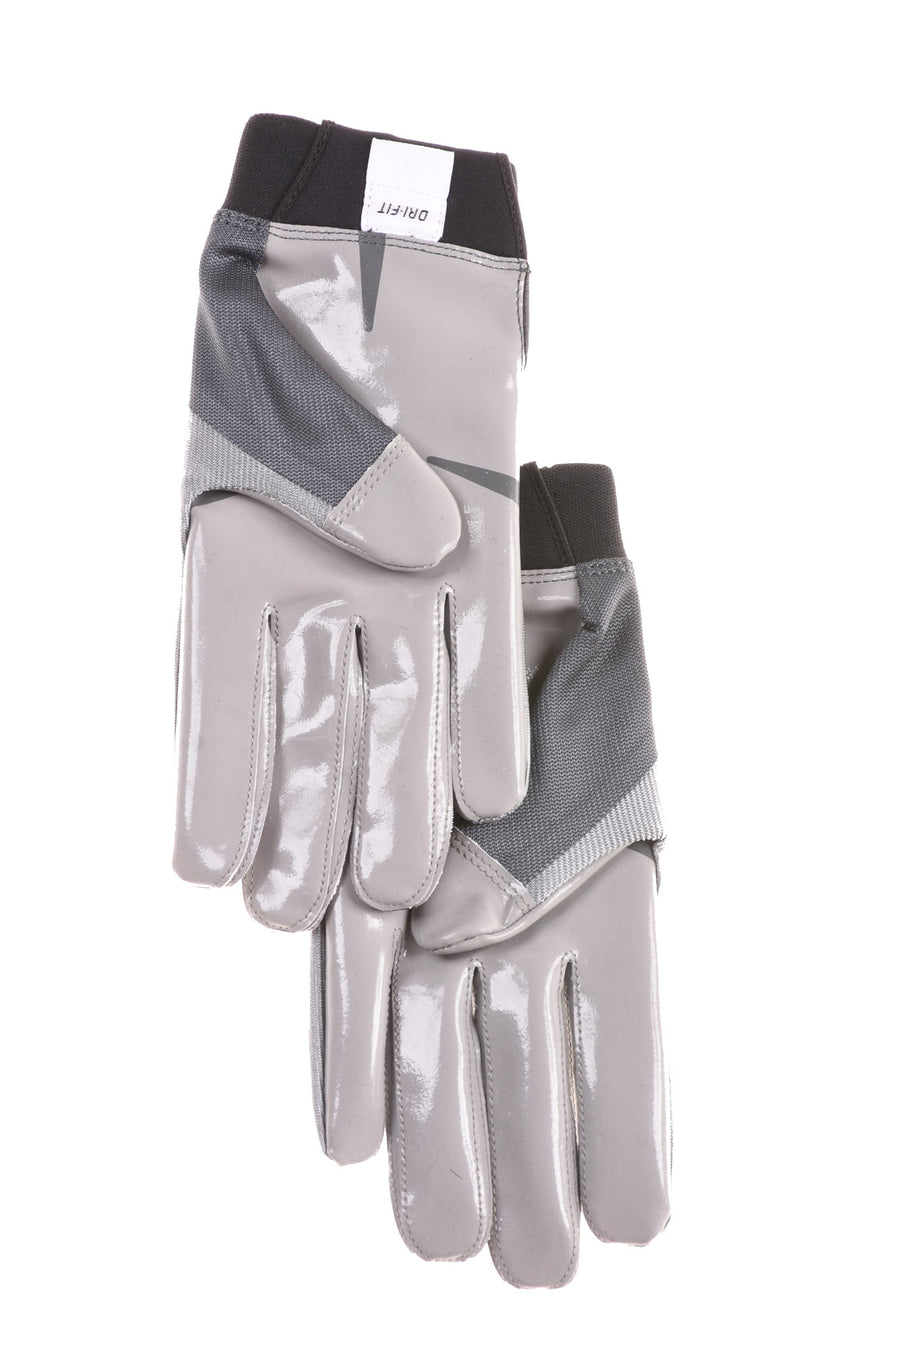 USED Nike Men's Gloves XX-Large Green & Gray